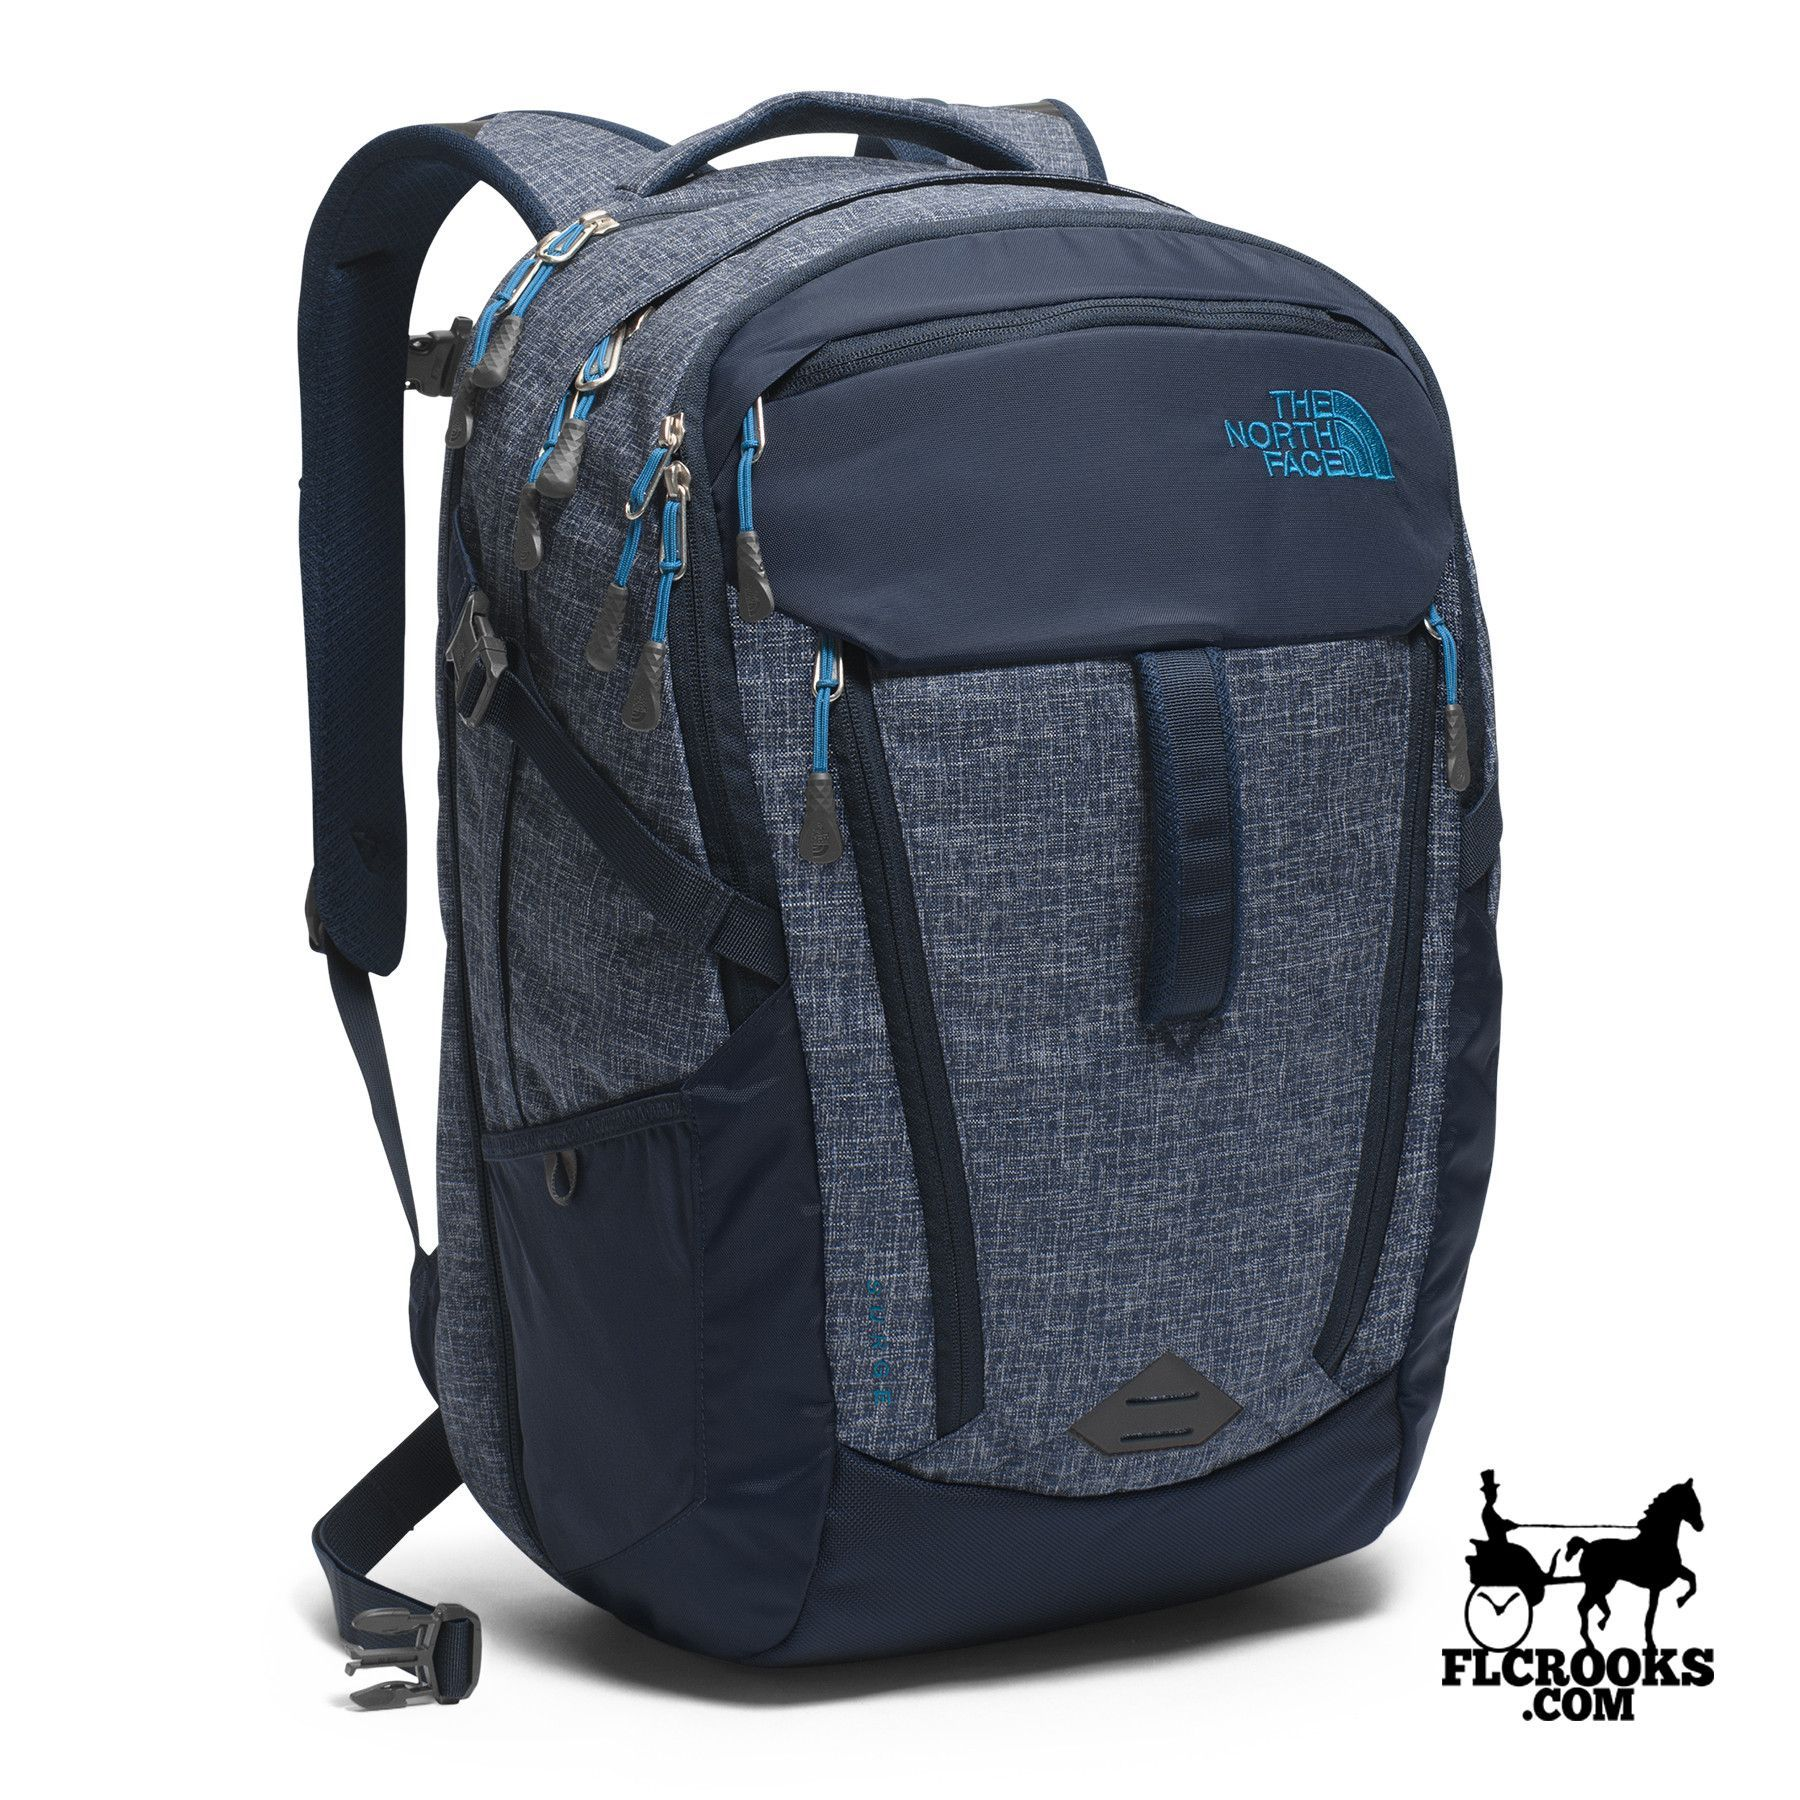 cefdc8310 The North Face Unisex Surge Ii Transit Backpack - CEAGESP